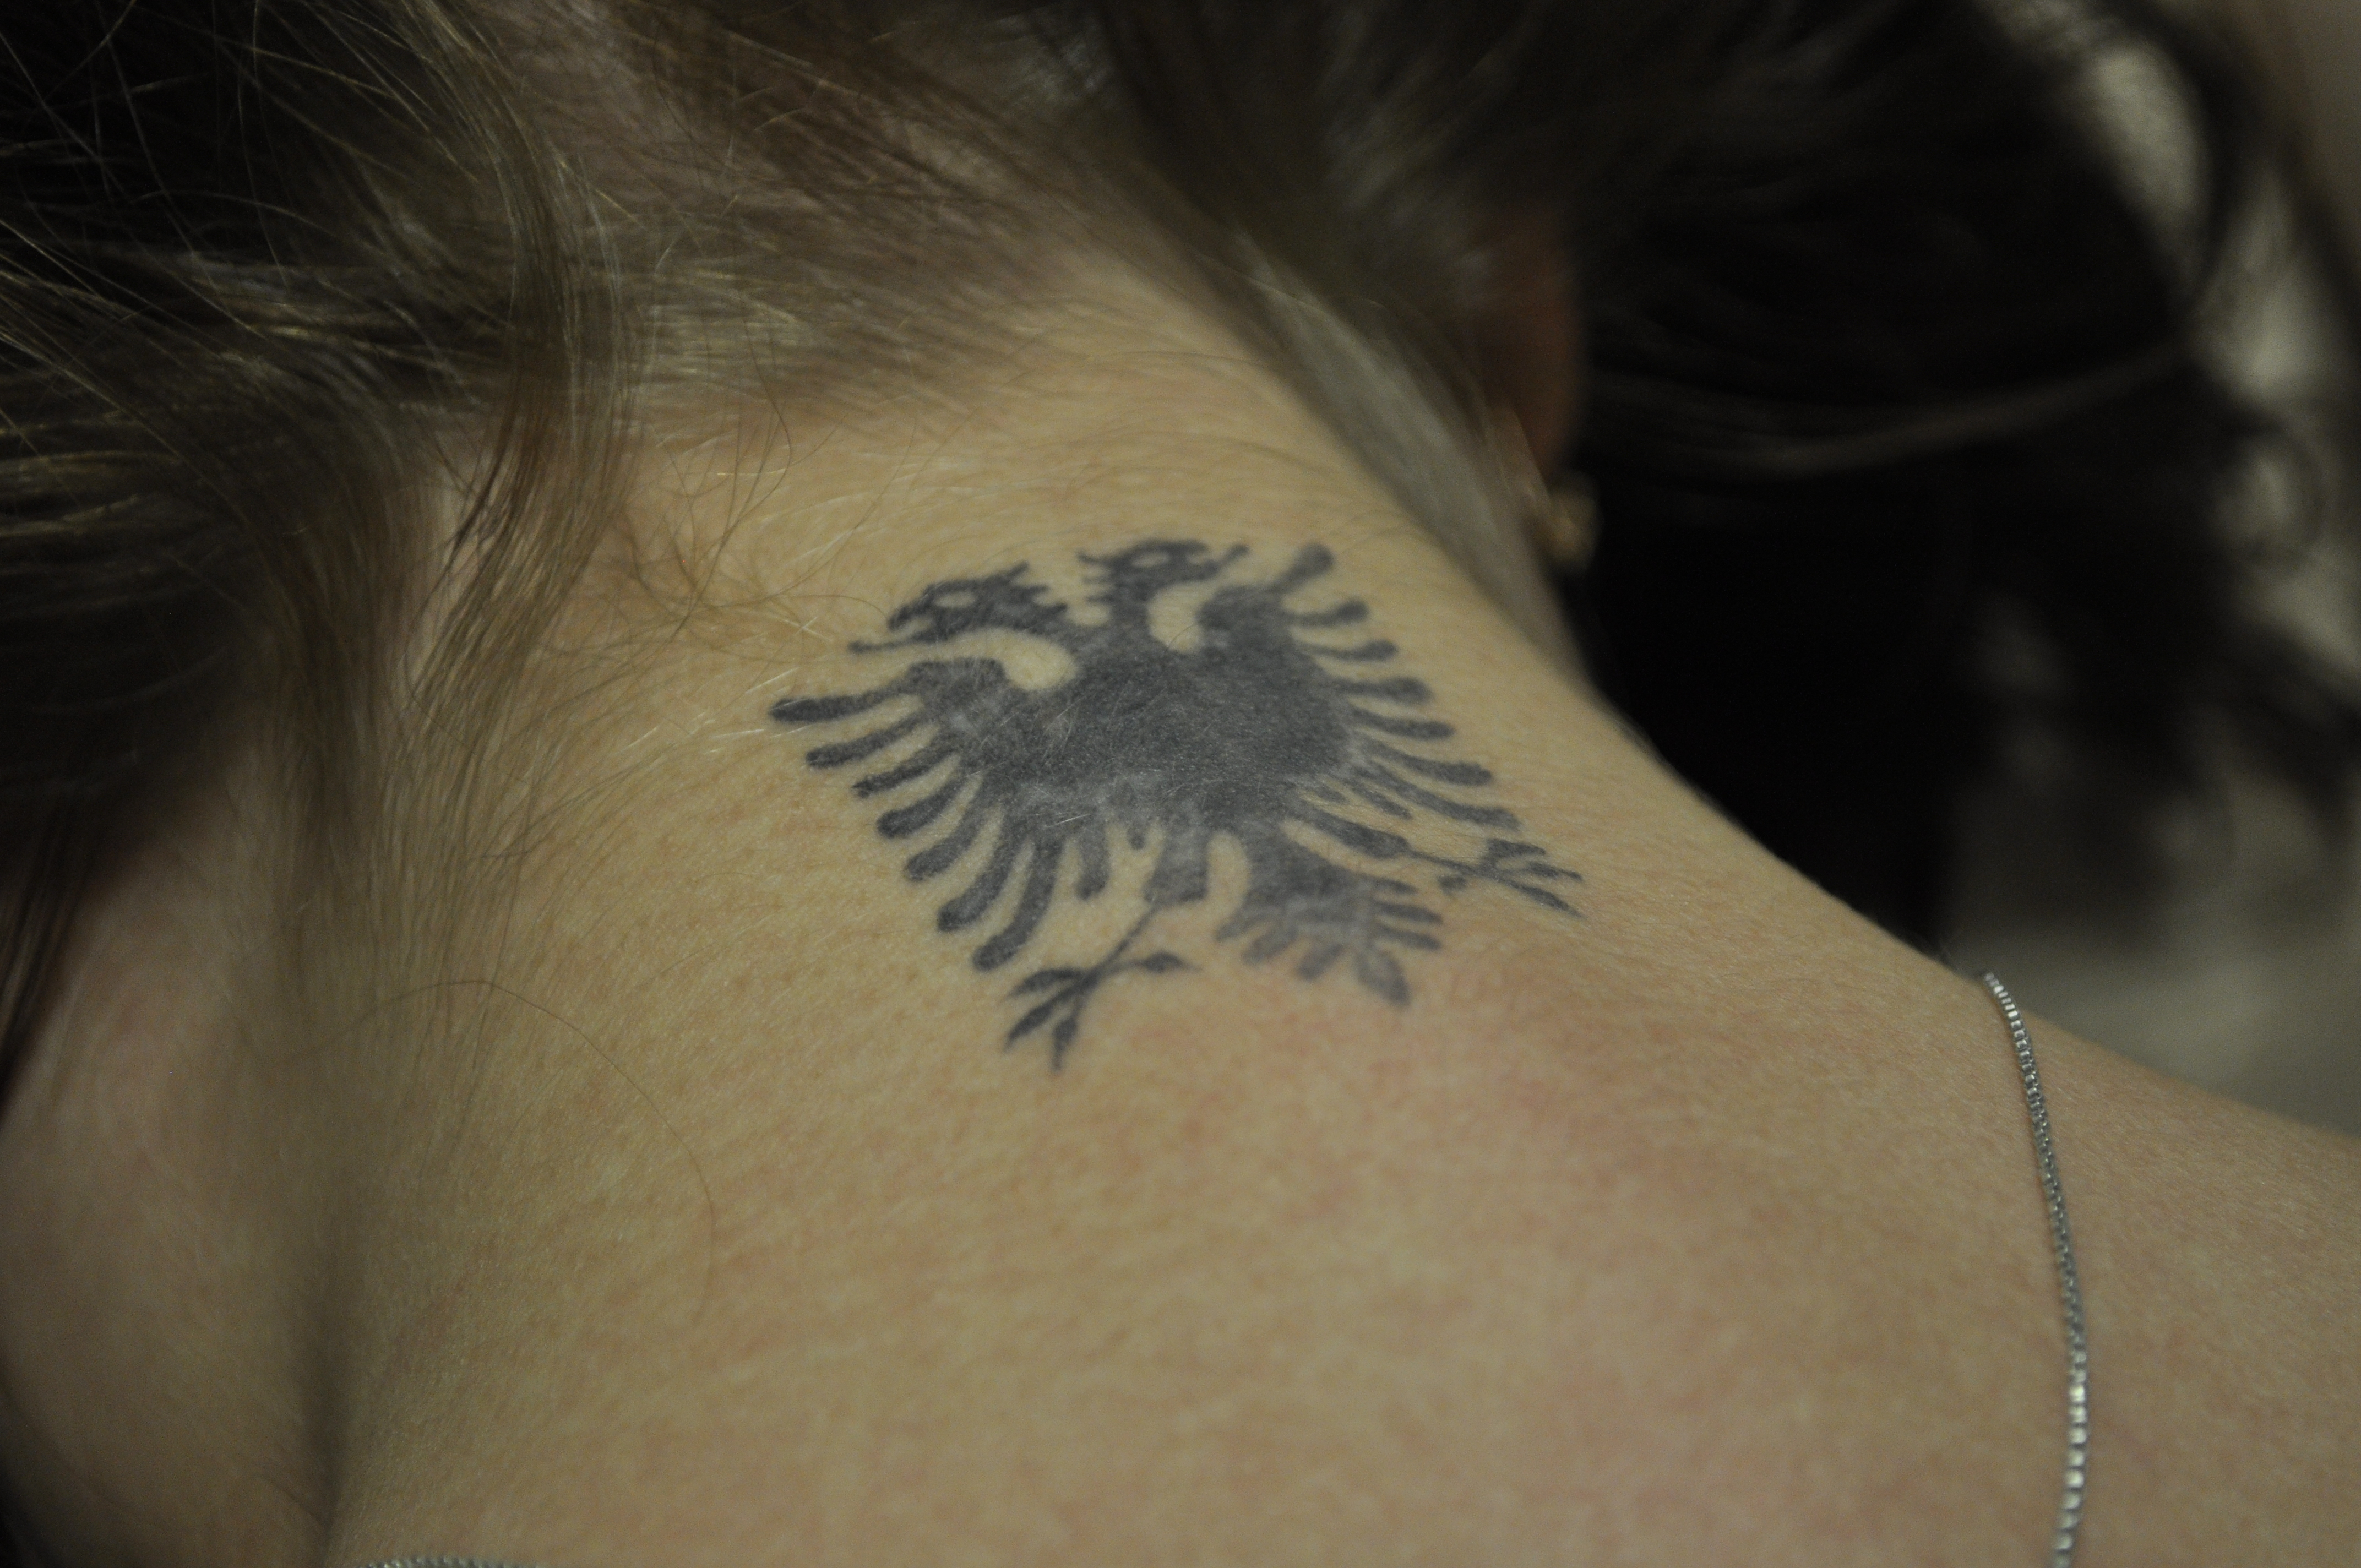 albanian flag tattoo pictures to pin on pinterest tattooskid. Black Bedroom Furniture Sets. Home Design Ideas